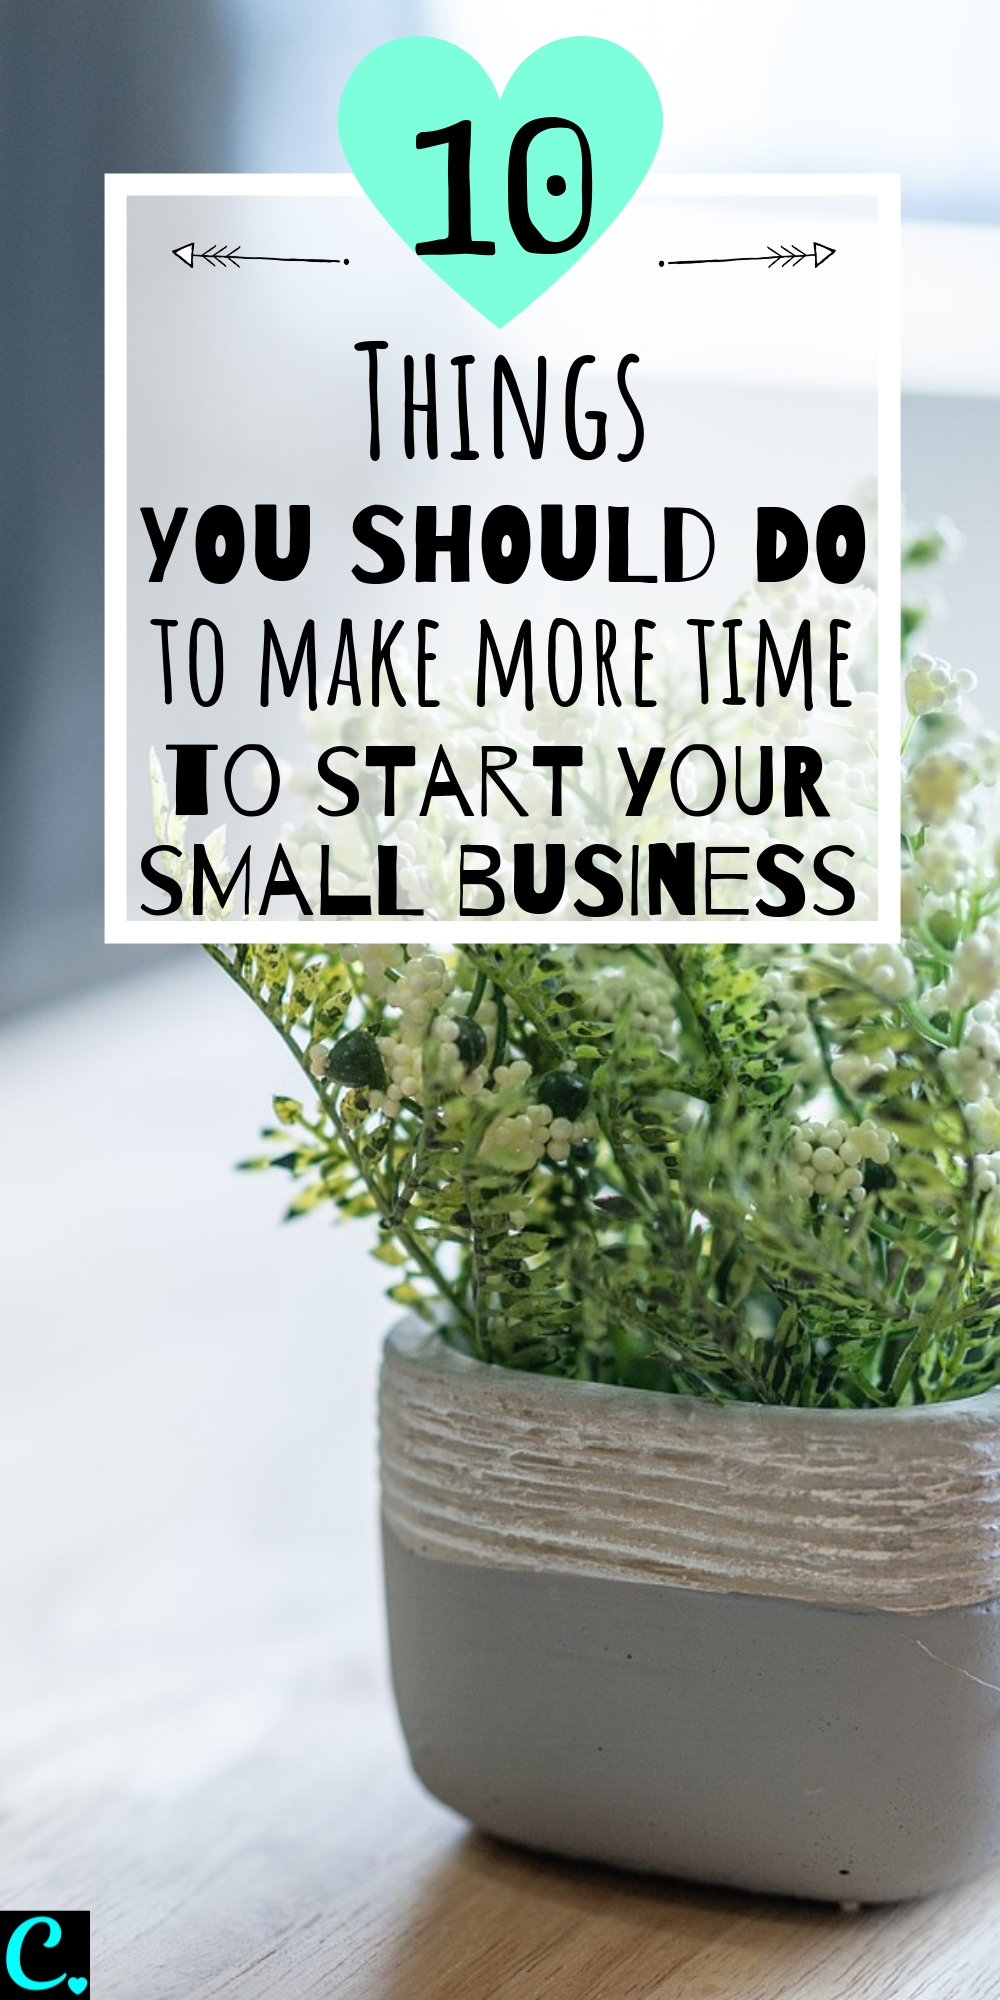 Are You Struggling To Find The Time To Start Your Small Business? These 10 Tips Will Help You Discover More Time In Your Already Busy Day To Get More Done Without Working Harder! #quiz #captivatingcrazy